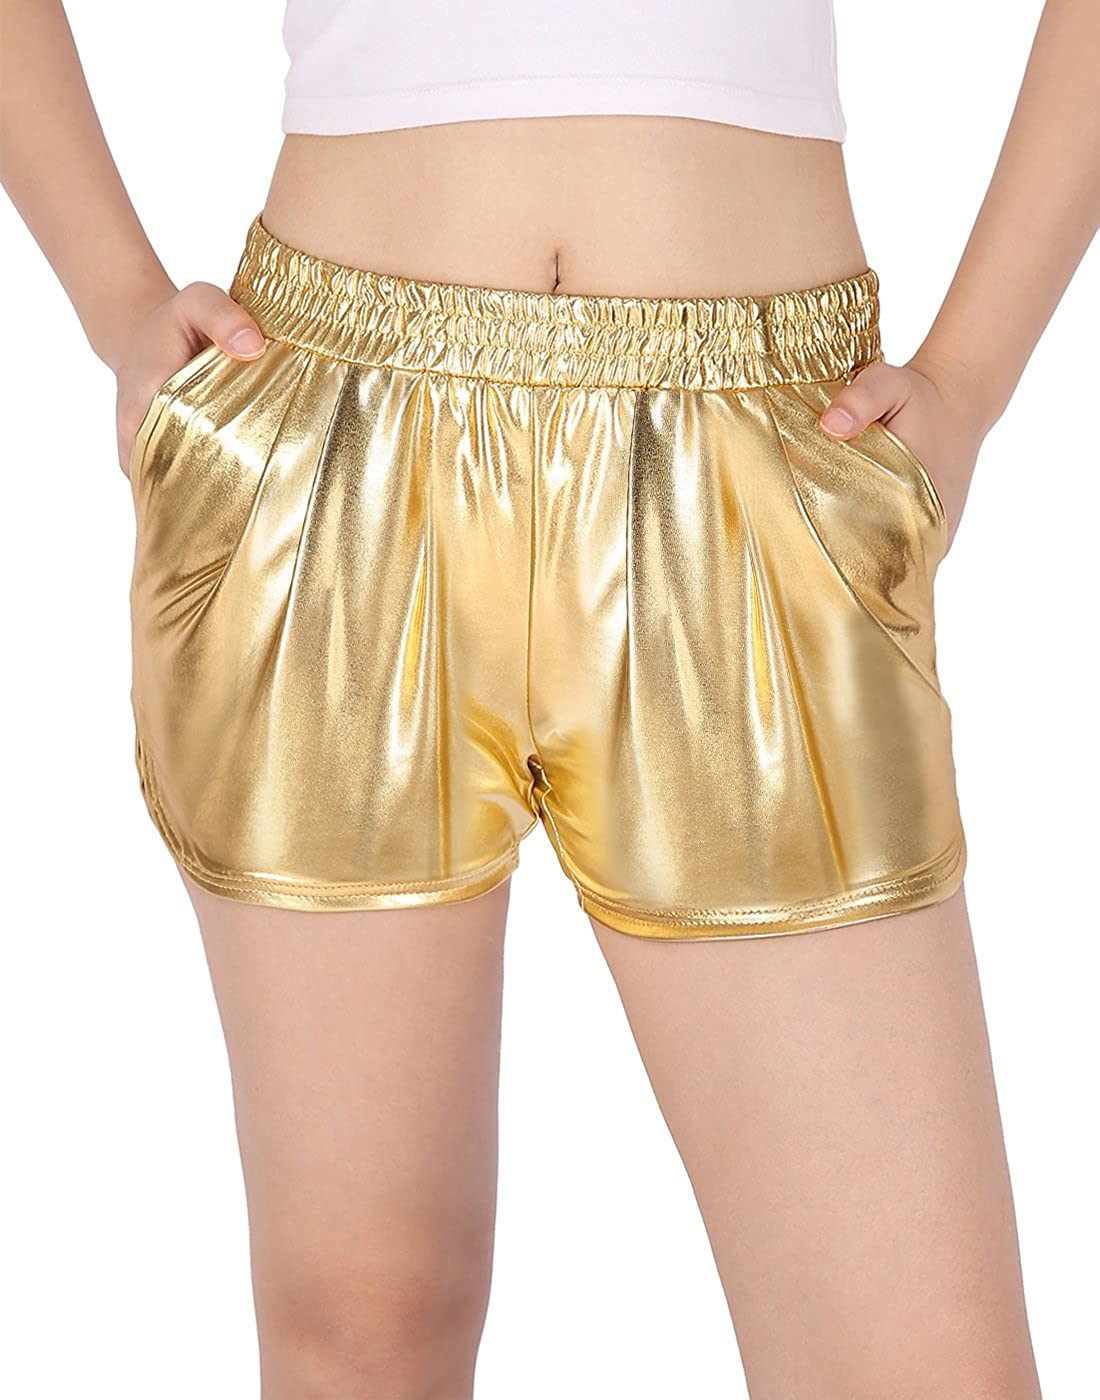 HDE Women's Hot Shorts Loose Shiny Metallic Yoga Pants